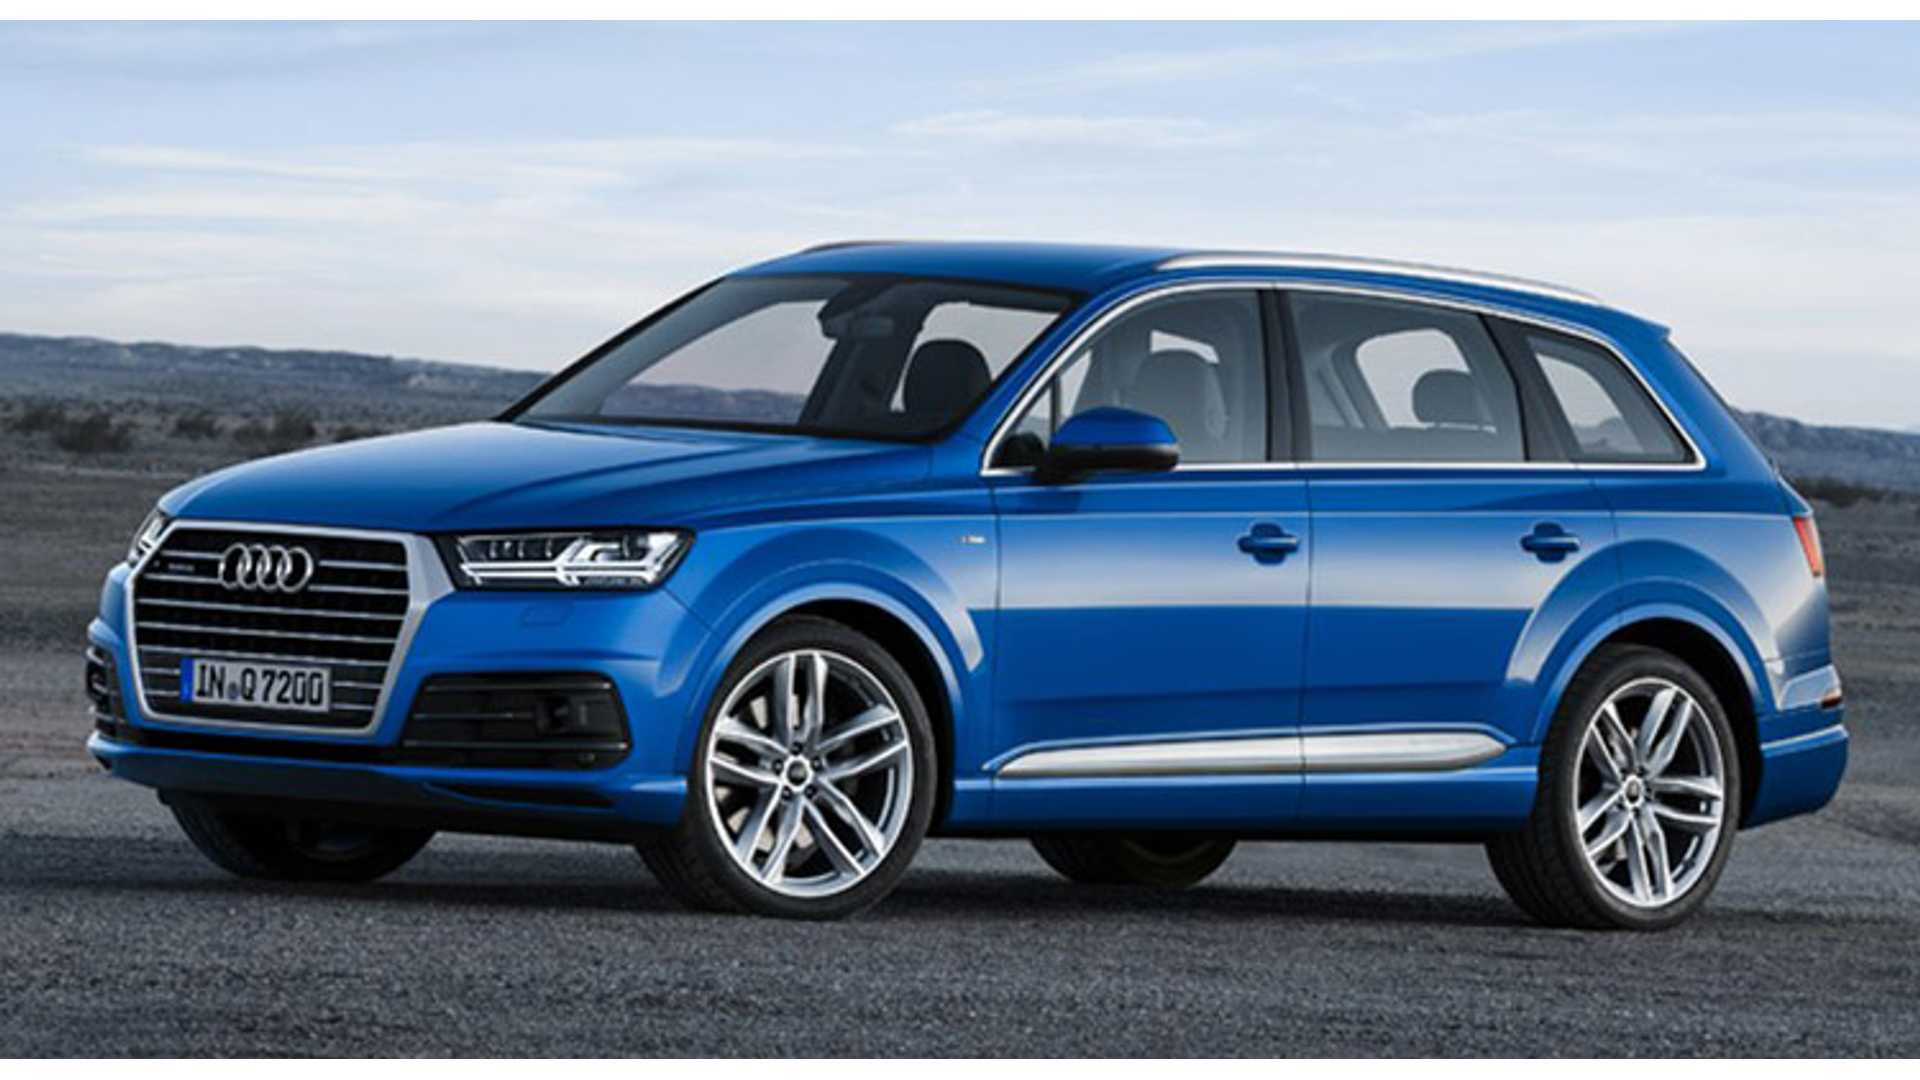 Audi Announces Launch Of 2016 Q7 E Tron Quattro Sel Plug In Hybrid